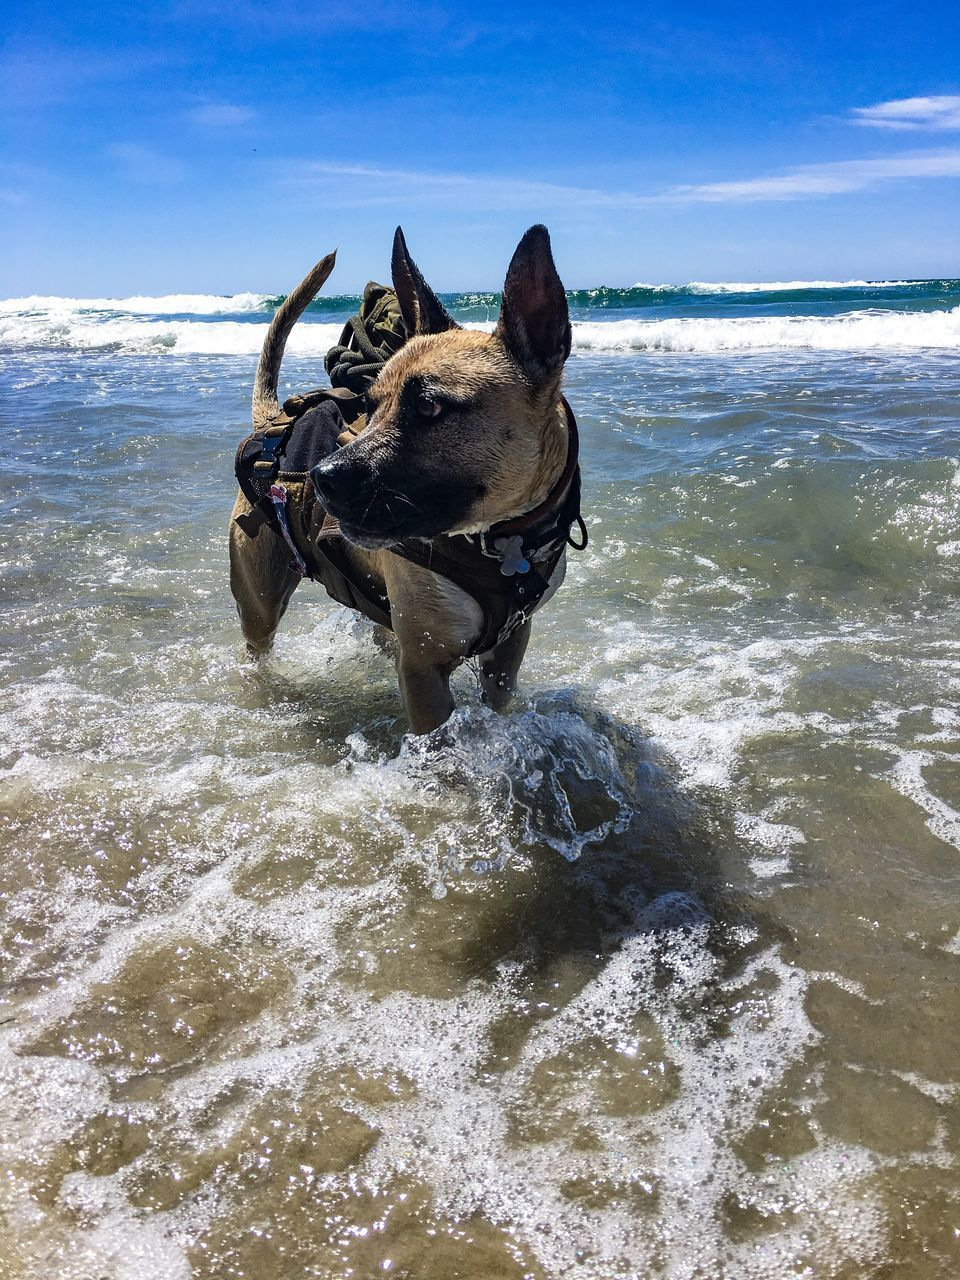 VIEW OF DOG IN SEA